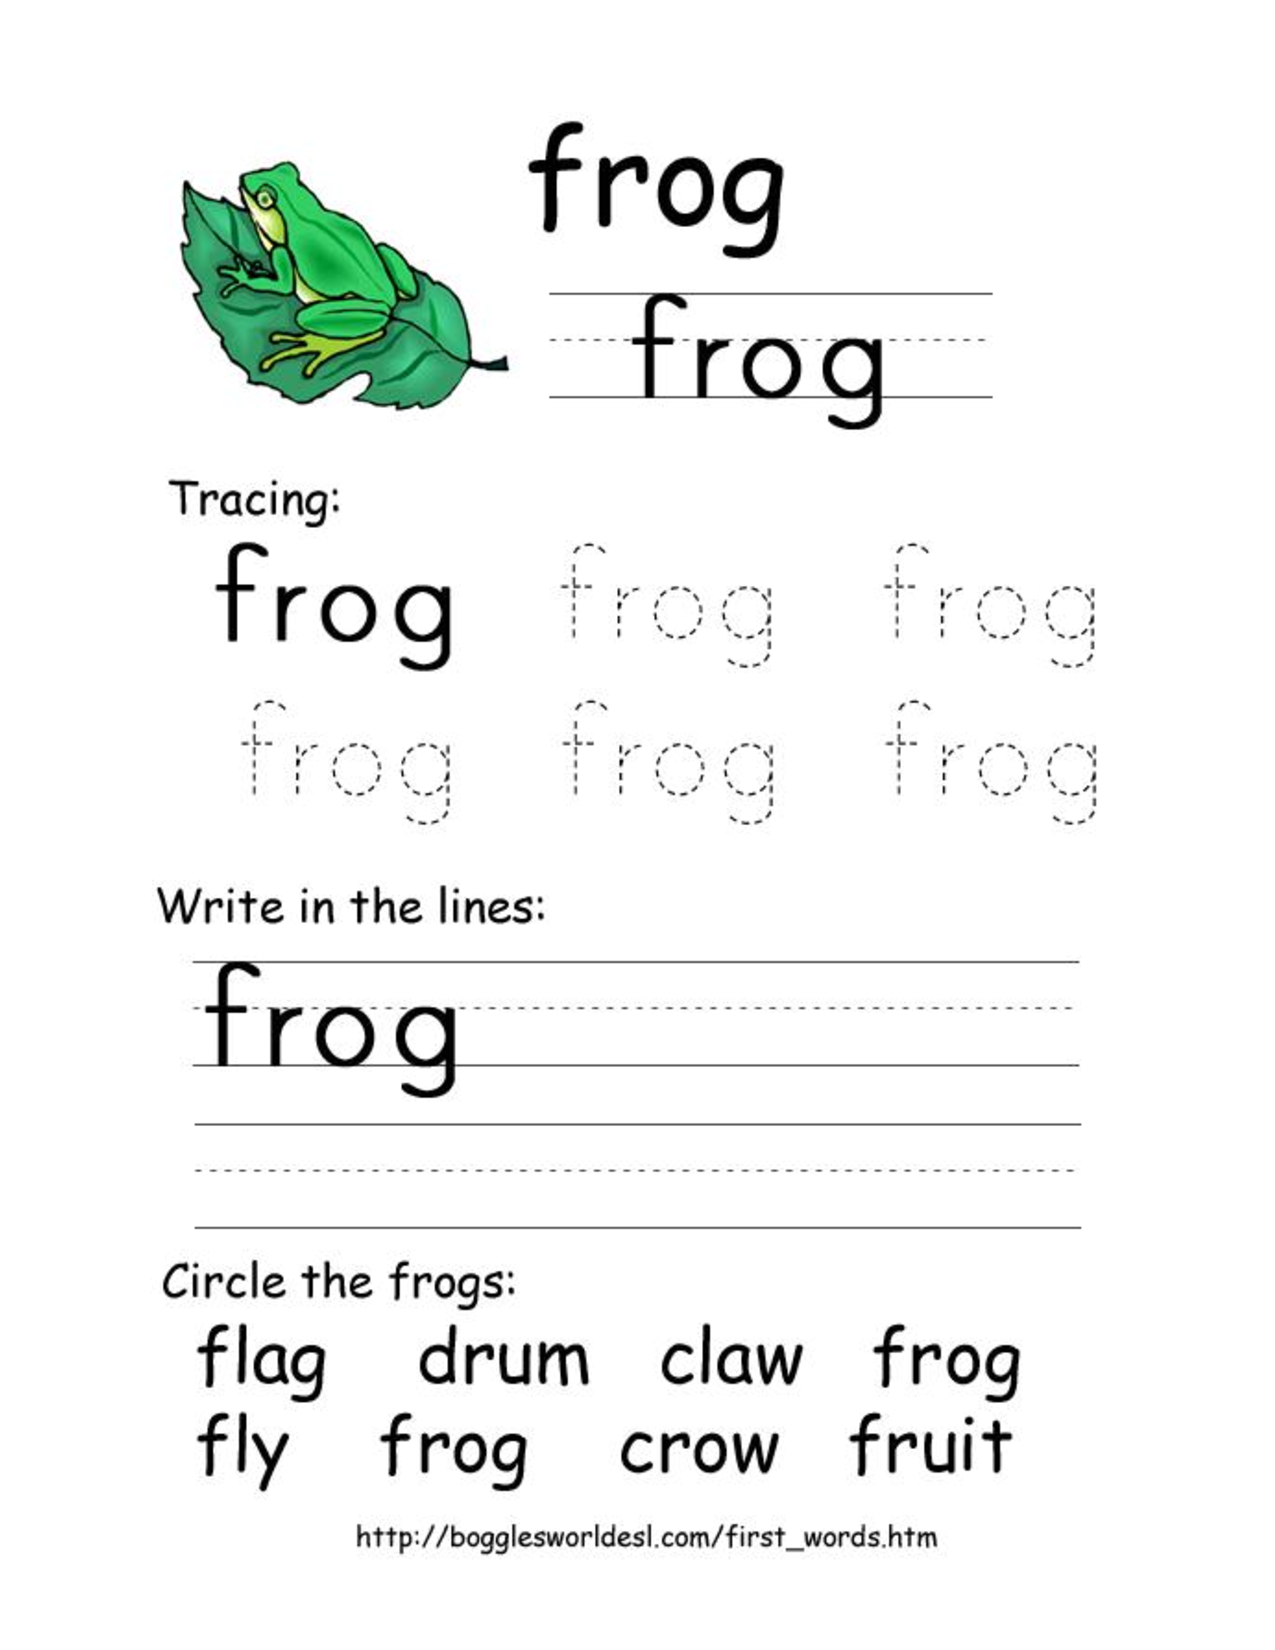 worksheet Free Kindergarten Phonics Worksheets kindergarten phonics worksheets printable free worksheet 5 best images of kindergarten